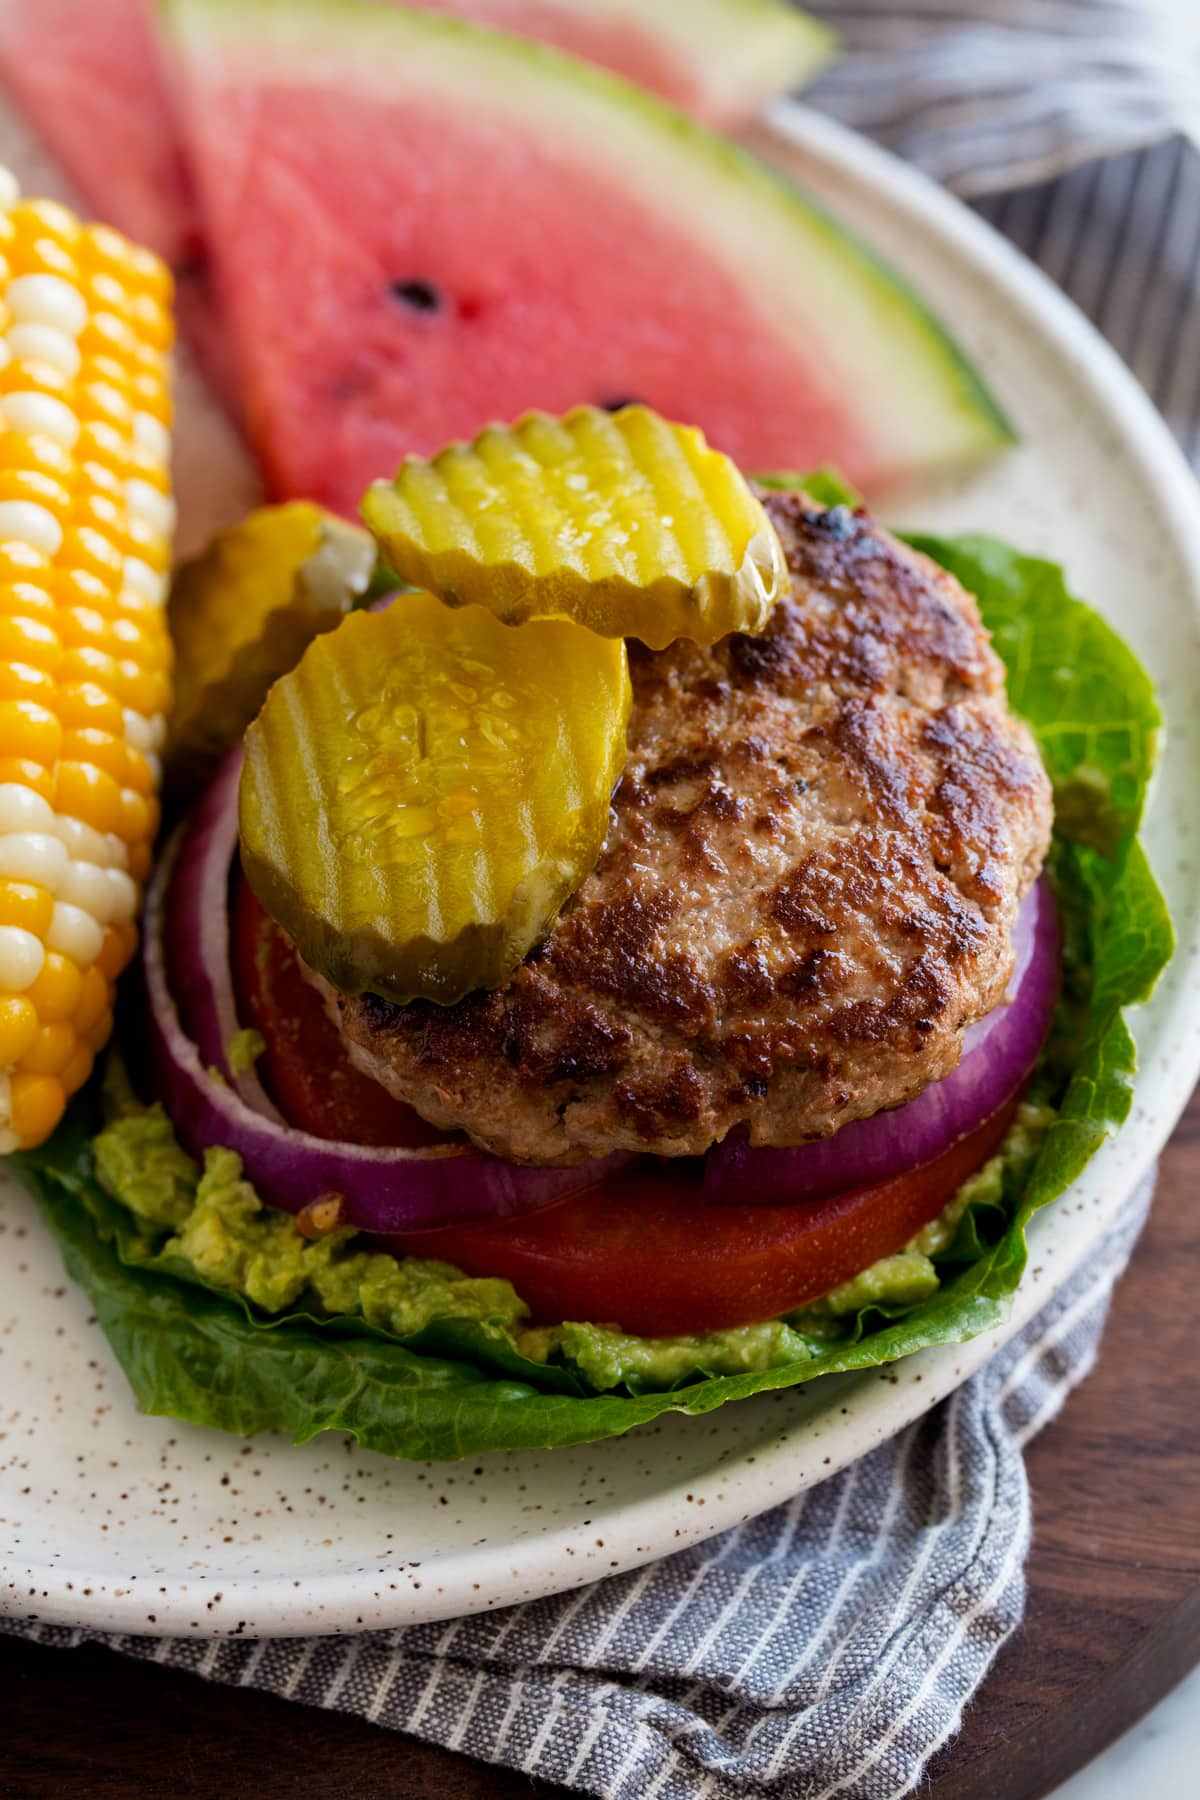 Low carb open faced turkey burger on lettuce leaves. Served with a side of corn and watermelon.